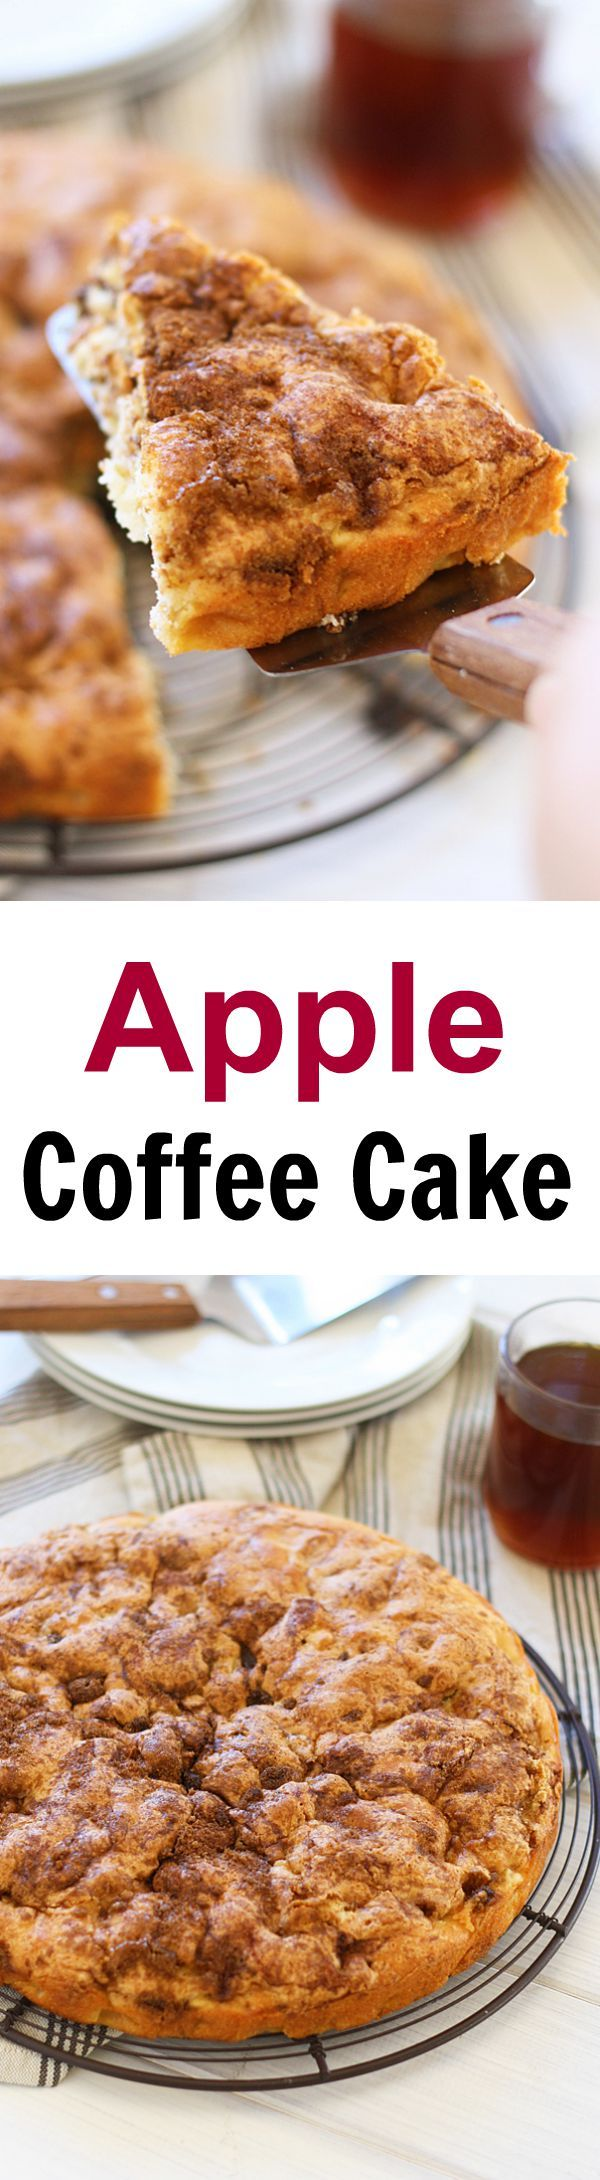 Apple Coffee Cake – sweet and decadent coffee cake loaded with apple, this cake is super easy to bake and perfect with tea or coffee | rasamalaysia.com